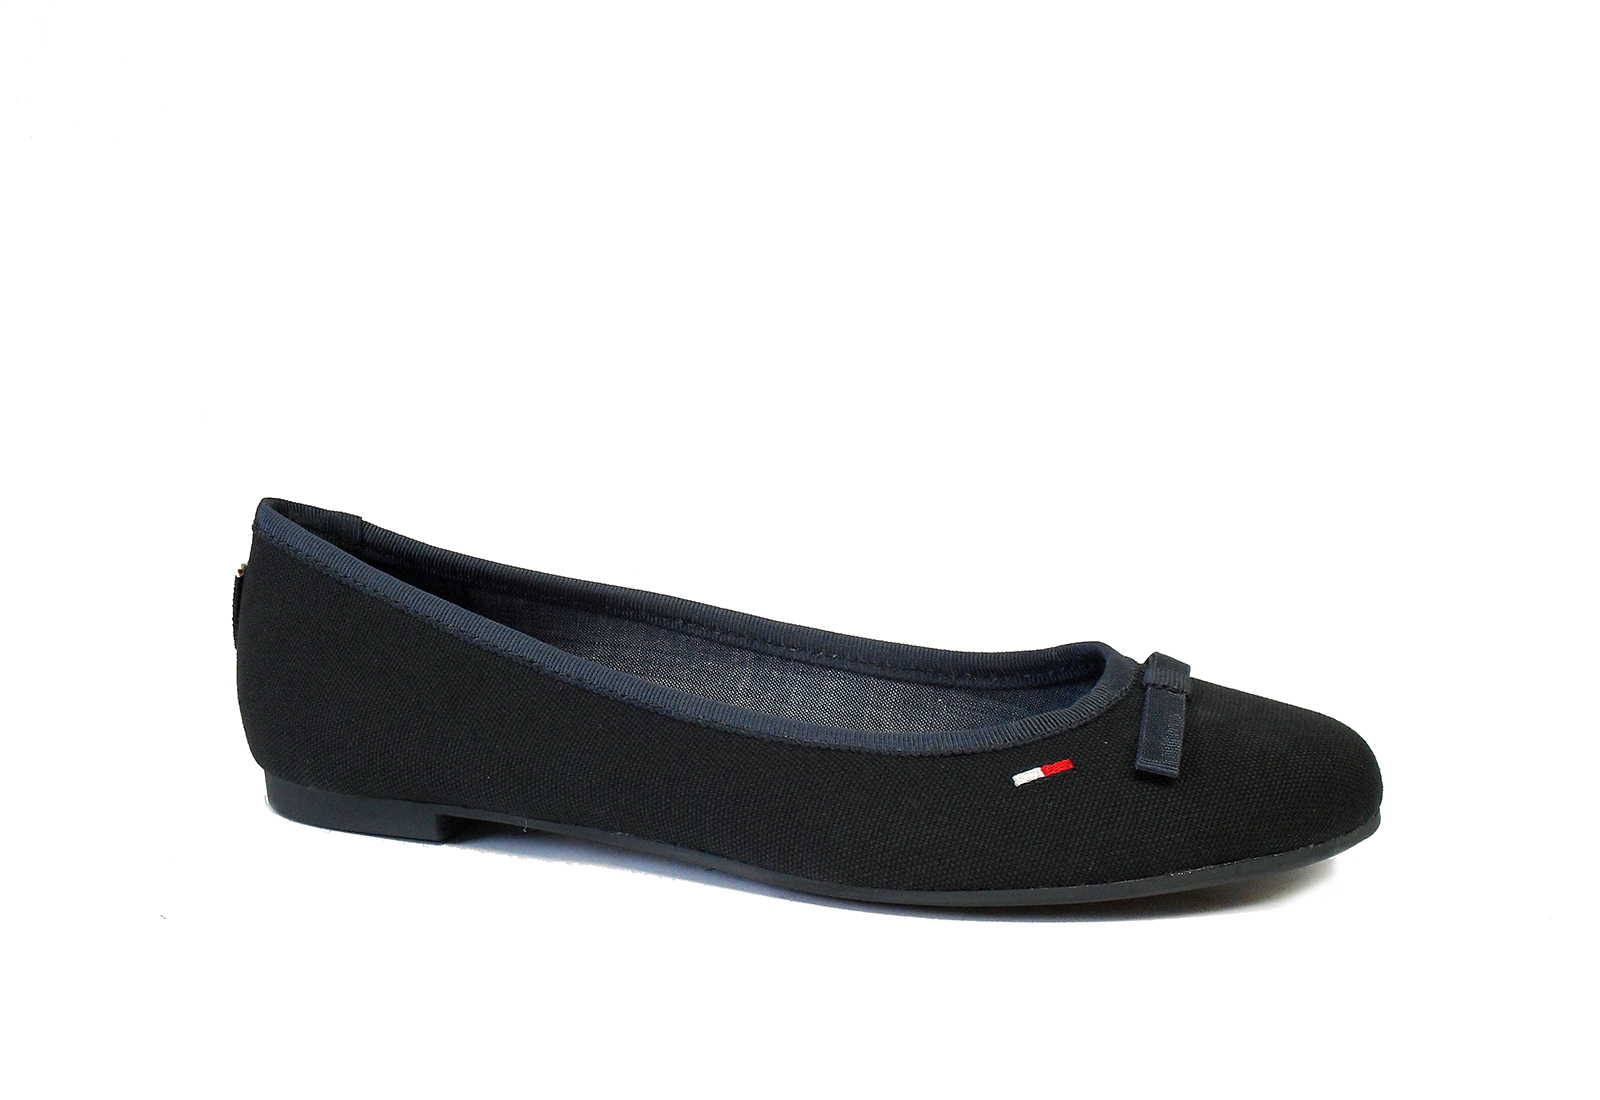 068f45a39f Tommy Hilfiger Balerina - Allen 16a - 13S-5420-403 - Office Shoes ...